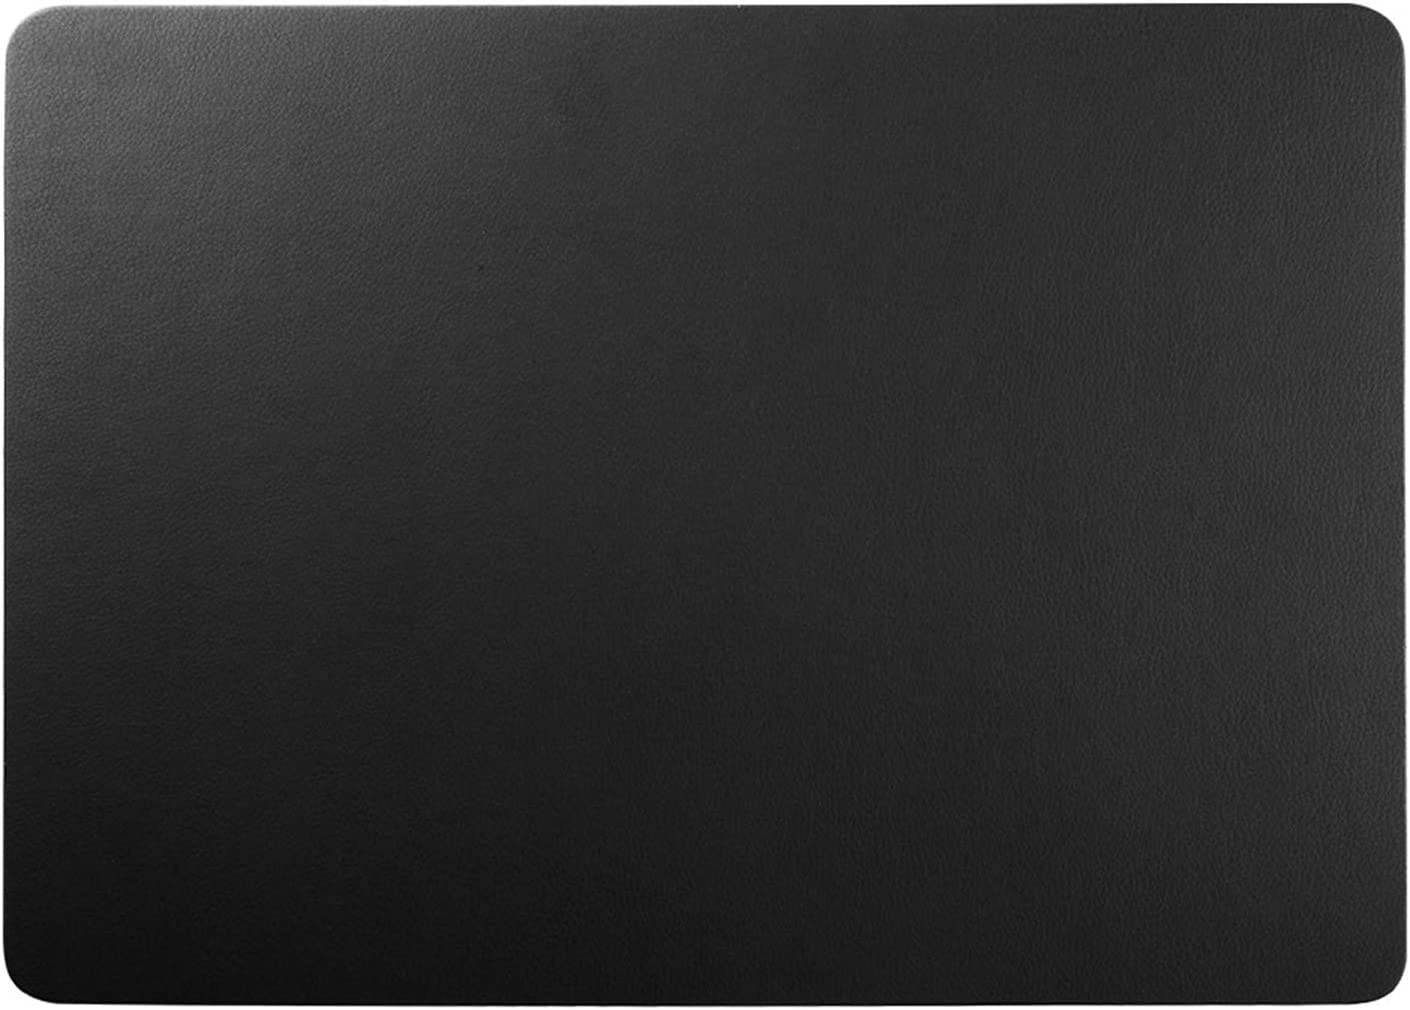 Black Leather Desk Pad Teather PU Leather Desk Mouse Mat Blotters Organizer for Gaming, Writing, Working … (17'' x 12'')